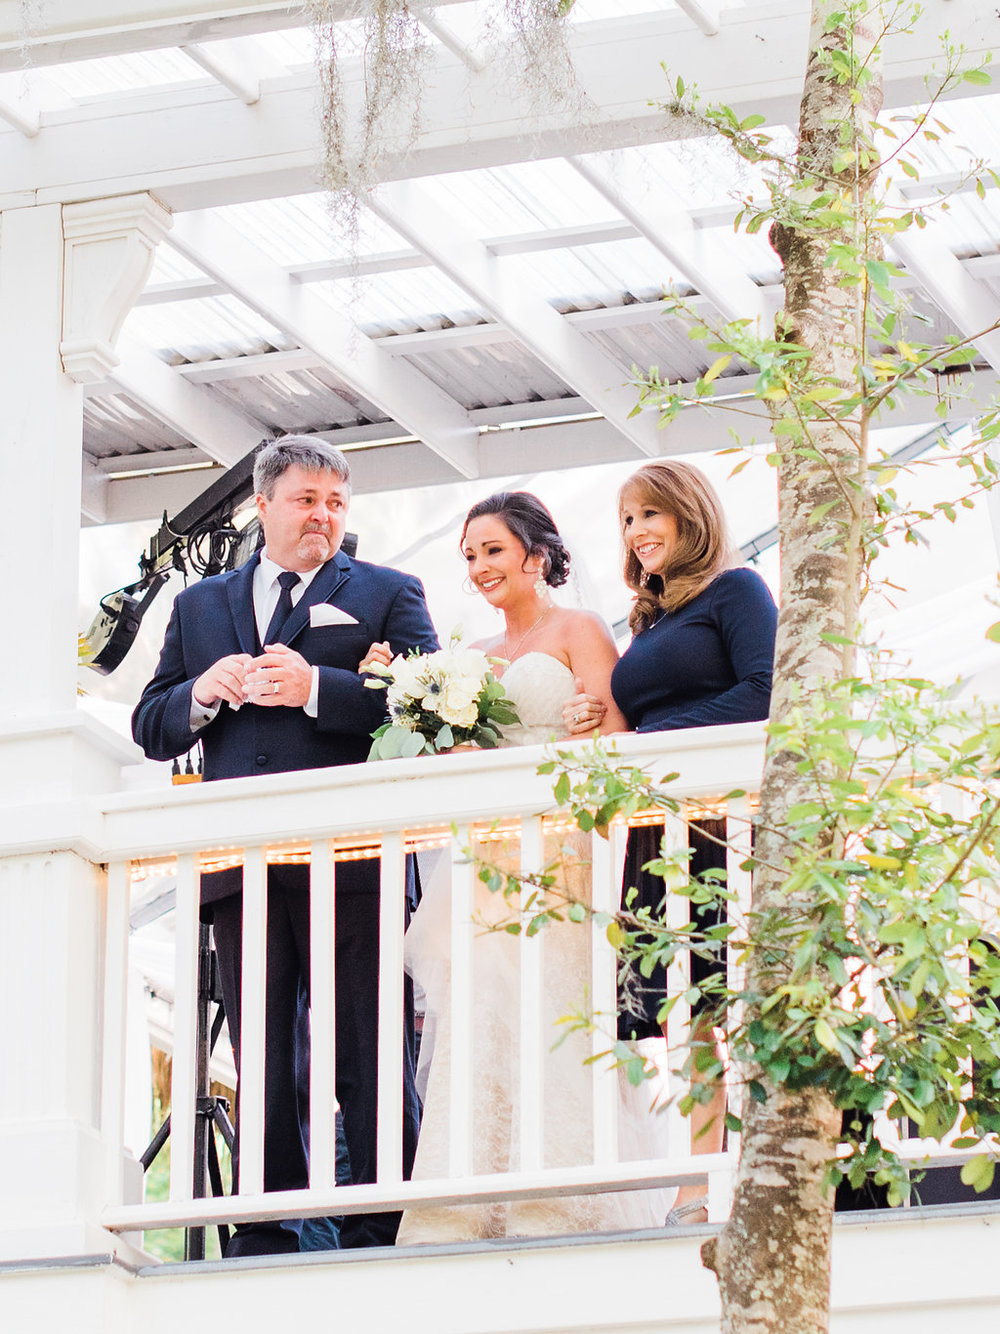 ivory-and-beau-bridal-boutique-lipski-surprise-wedding-5d-photography-military-wedding-savannah-savannah-military-bride-surprise-wedding-39.jpg